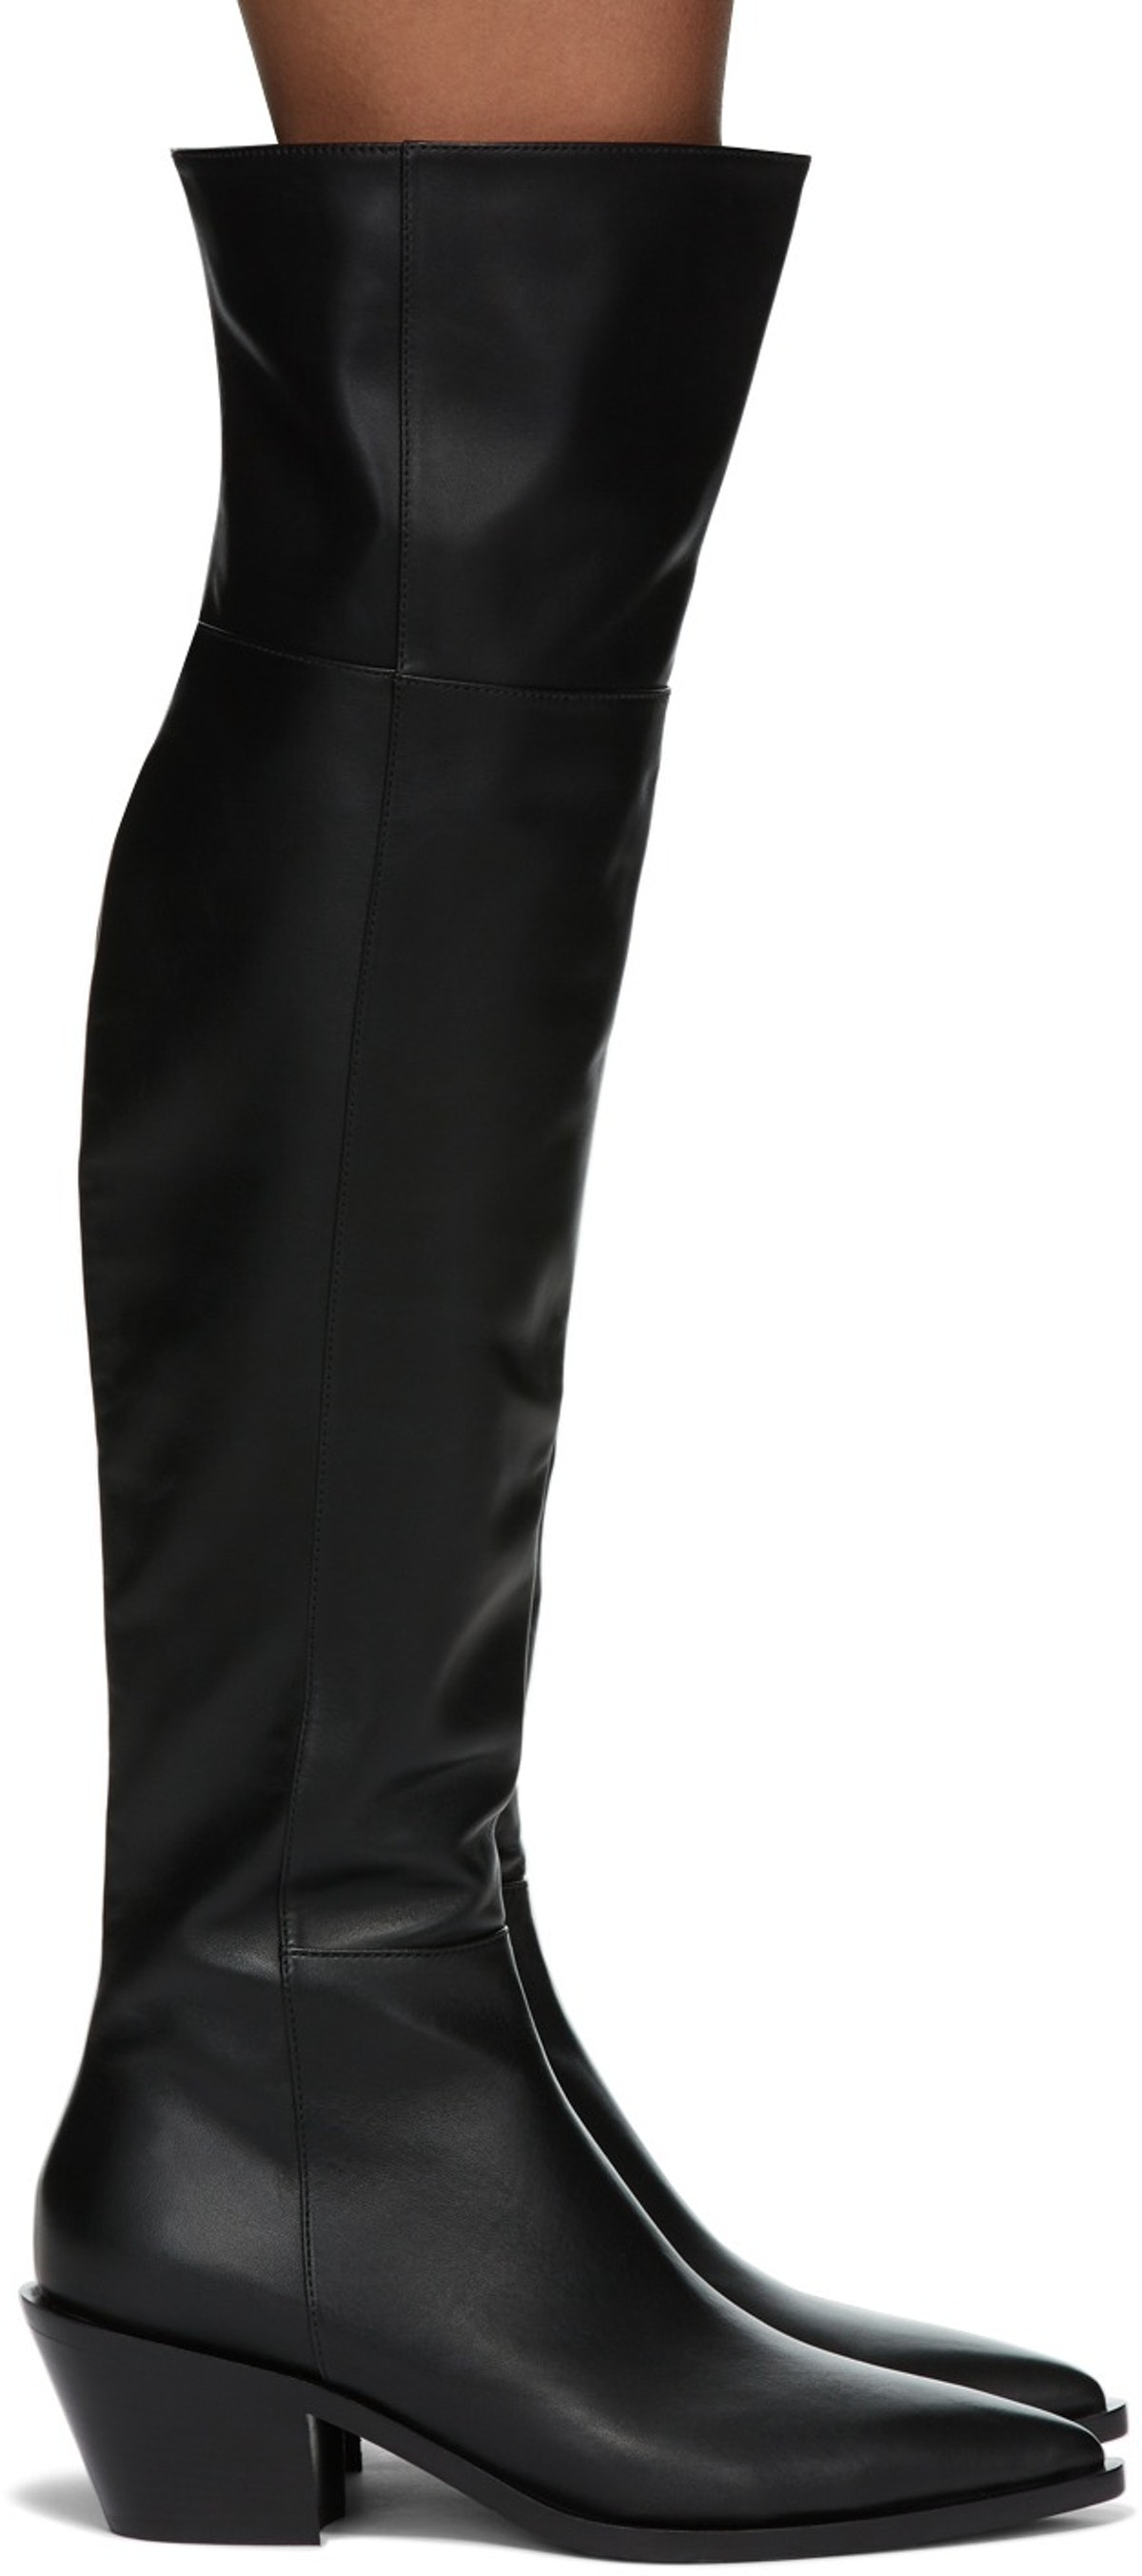 Black Over-The-Knee Boots from Gianvito Rossi, available to shop on SSENSE.